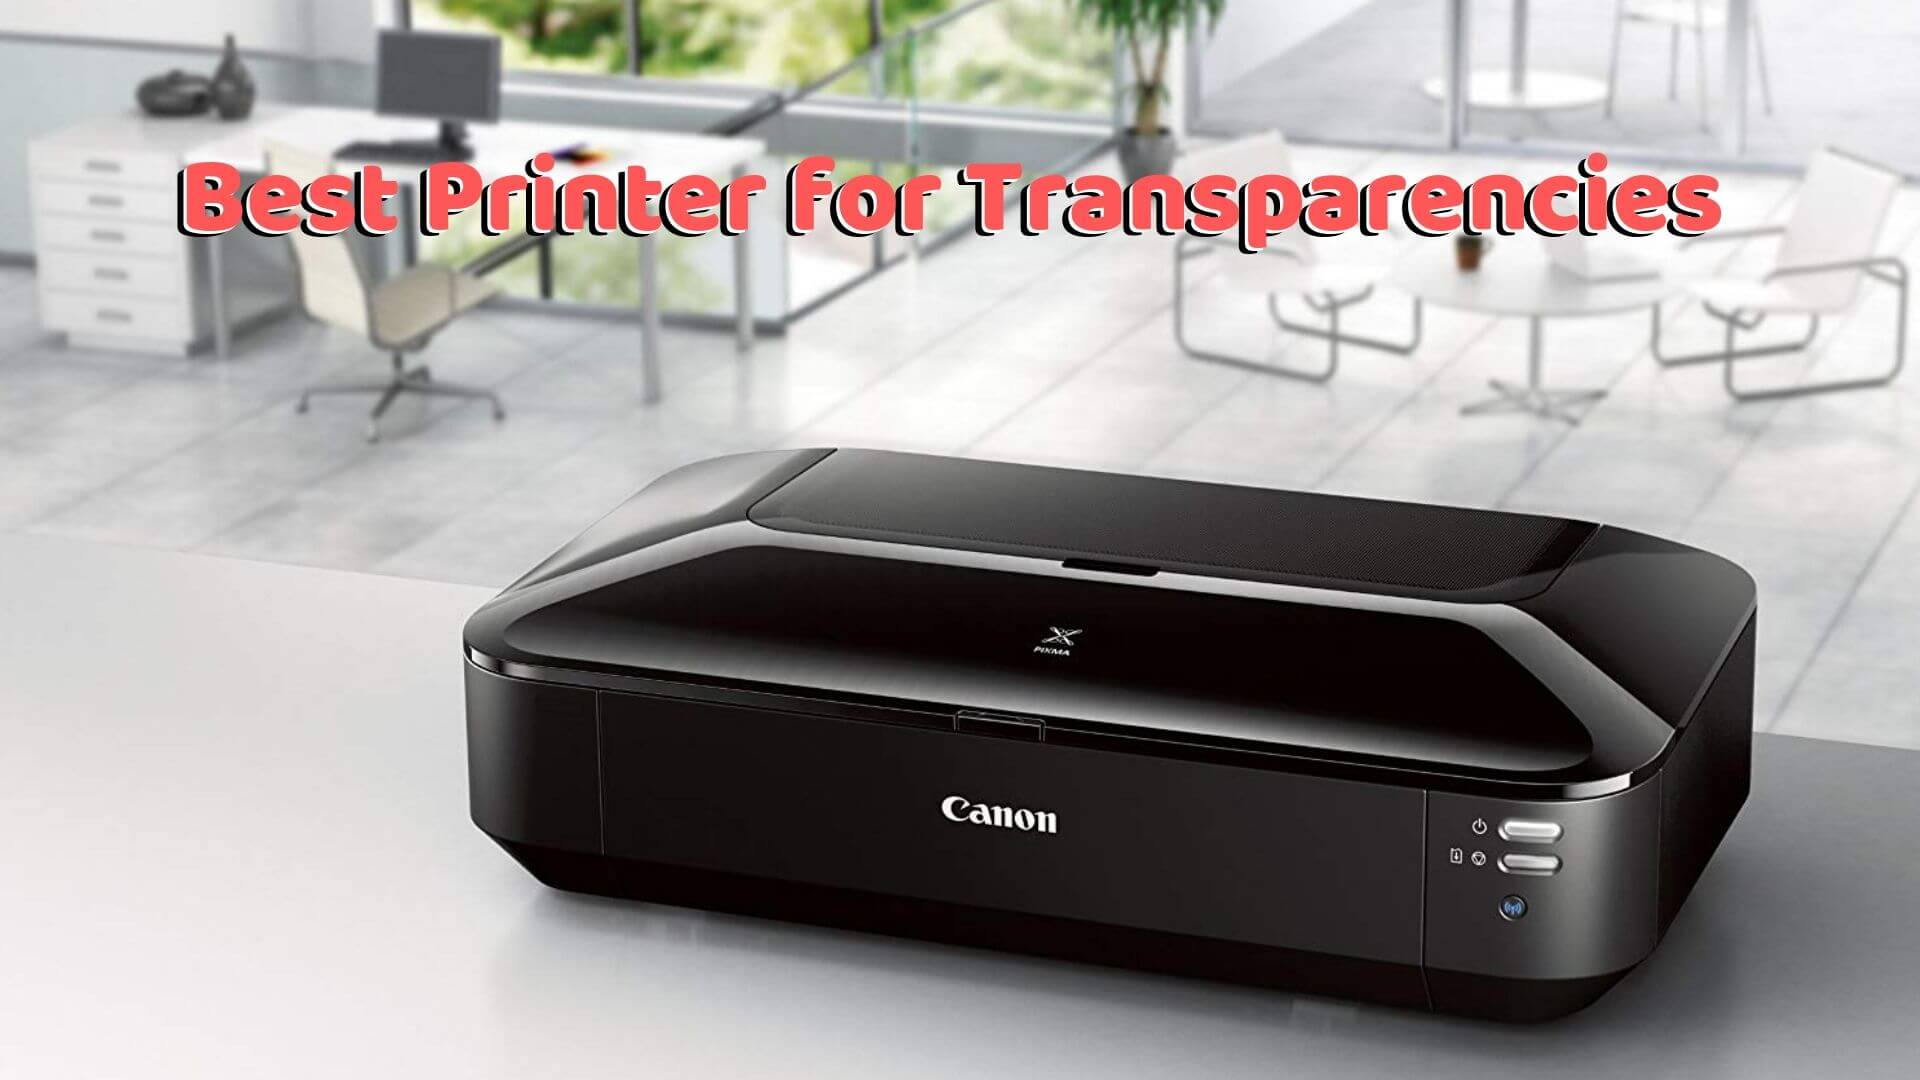 Best Photo Printer 2020.Best Printer For Transparencies Top Printer Review Of 2020